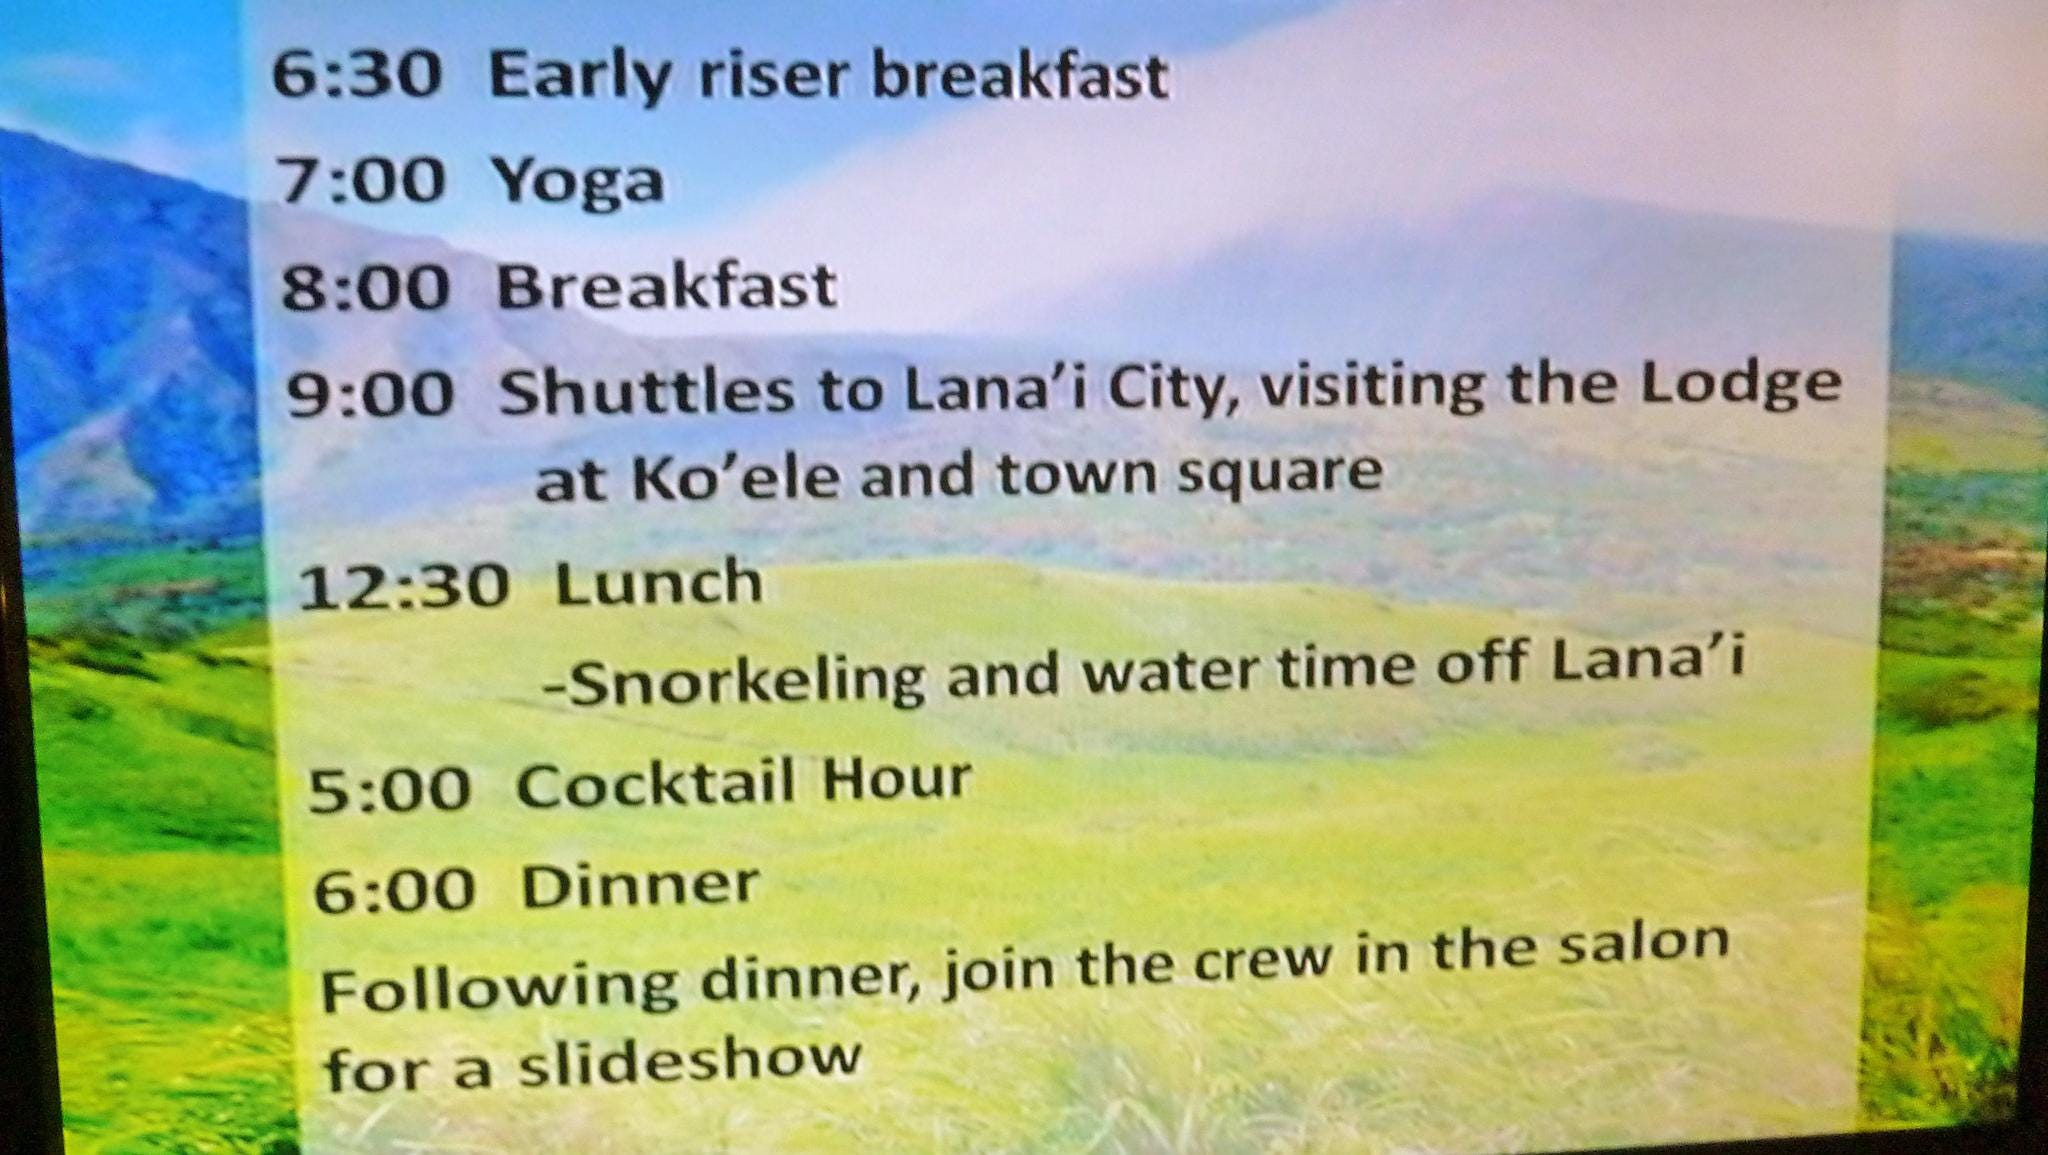 In lieu of printed programs, each day's schedule of events is broadcast on the cabin television.